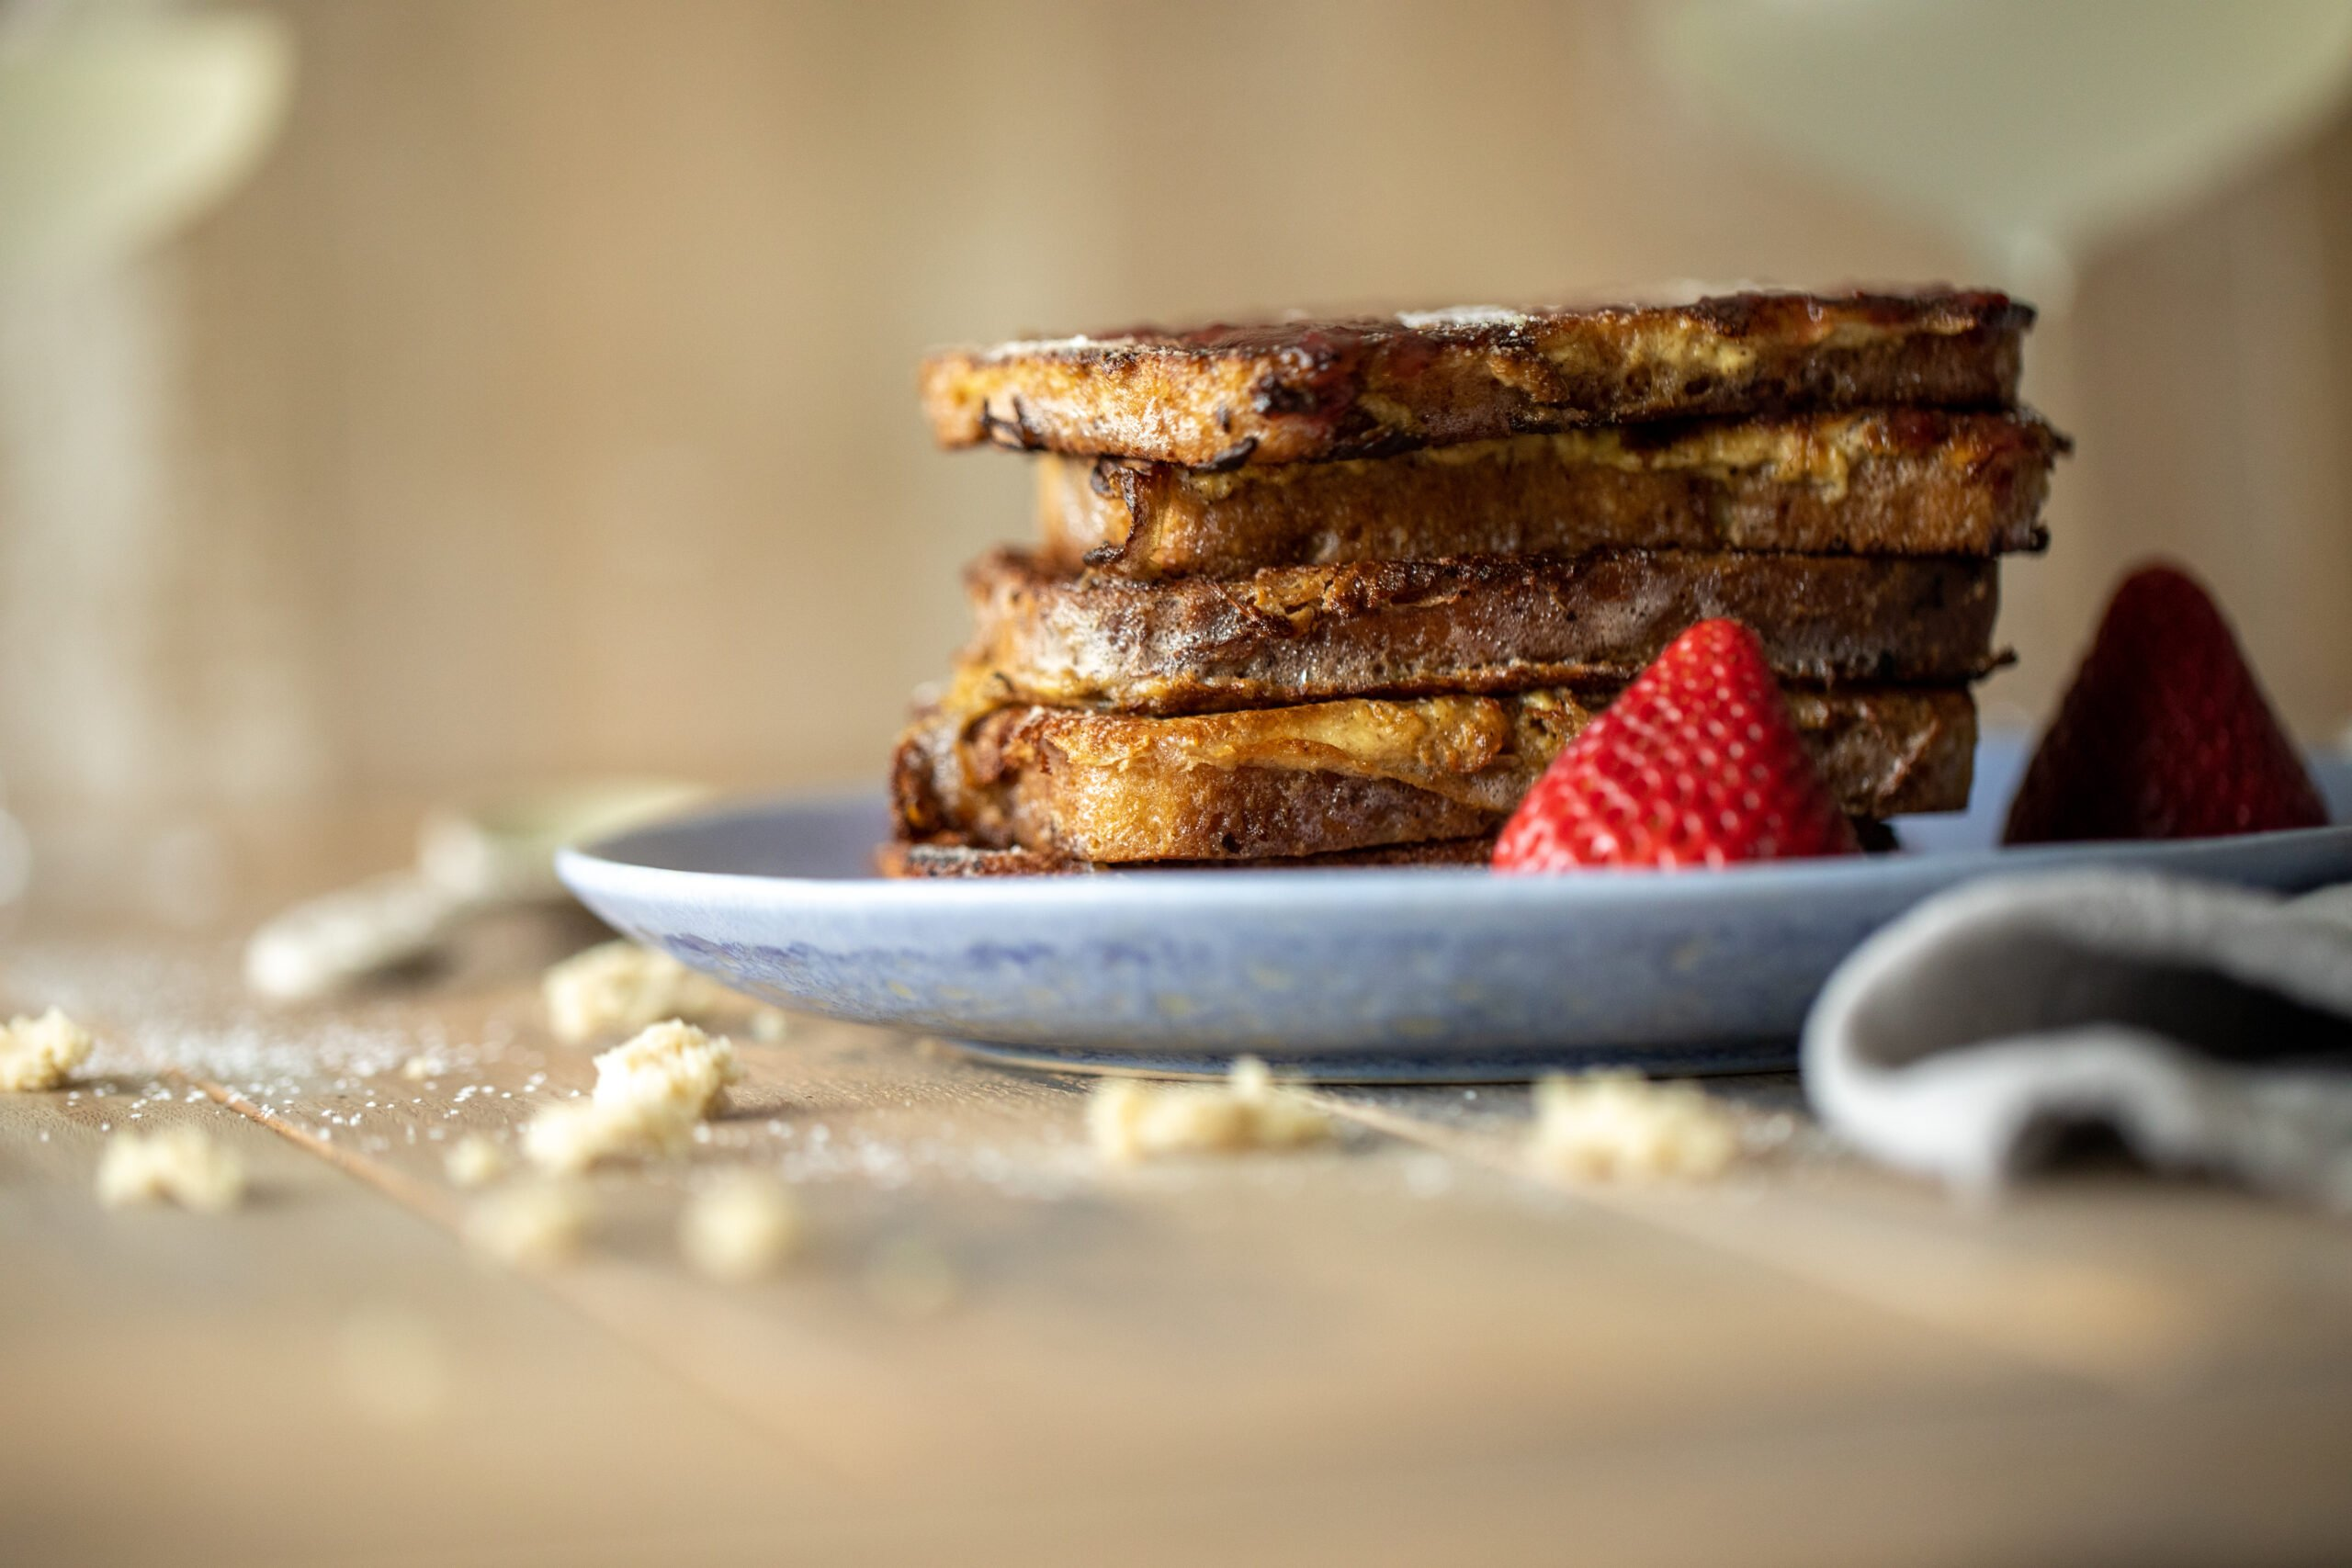 Gluten Free Sourdough French Toast with Raspberry Syrup